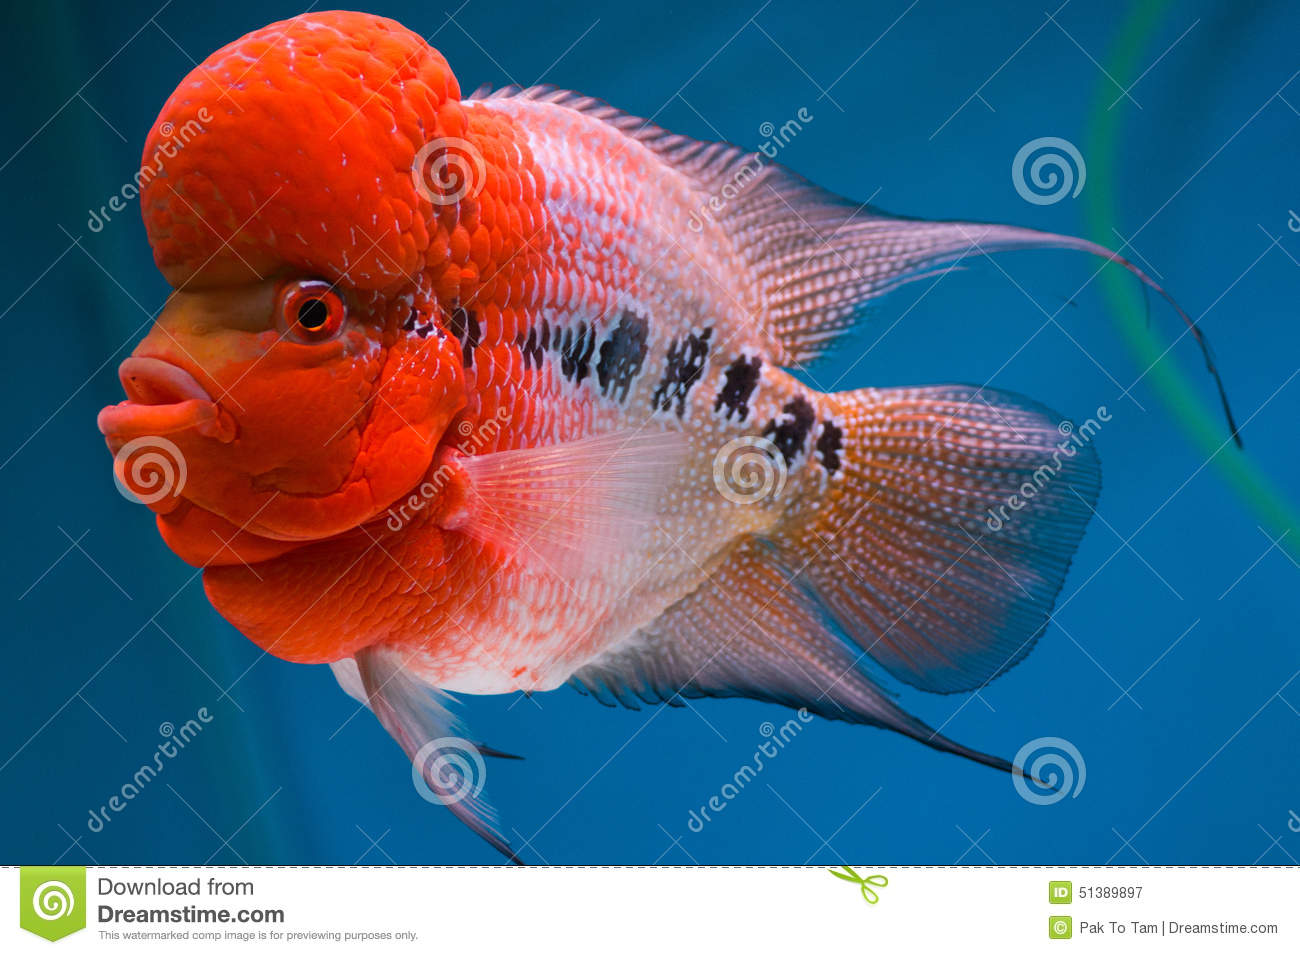 Fish With Big Head Stock Photo - Image: 51389897